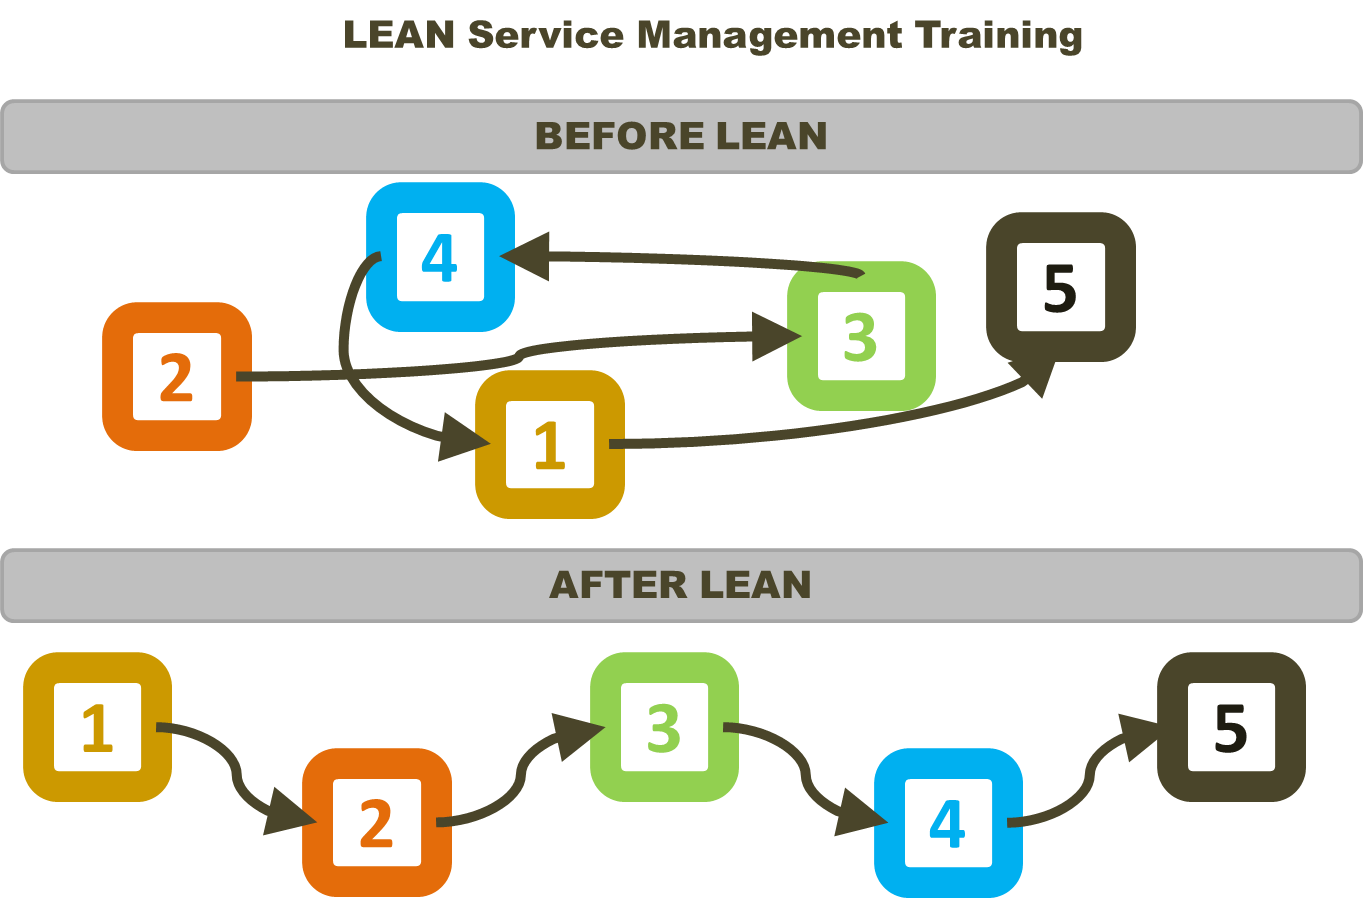 Lean services training lean six sigma belgium lean service training lean six sigma belgium xflitez Choice Image